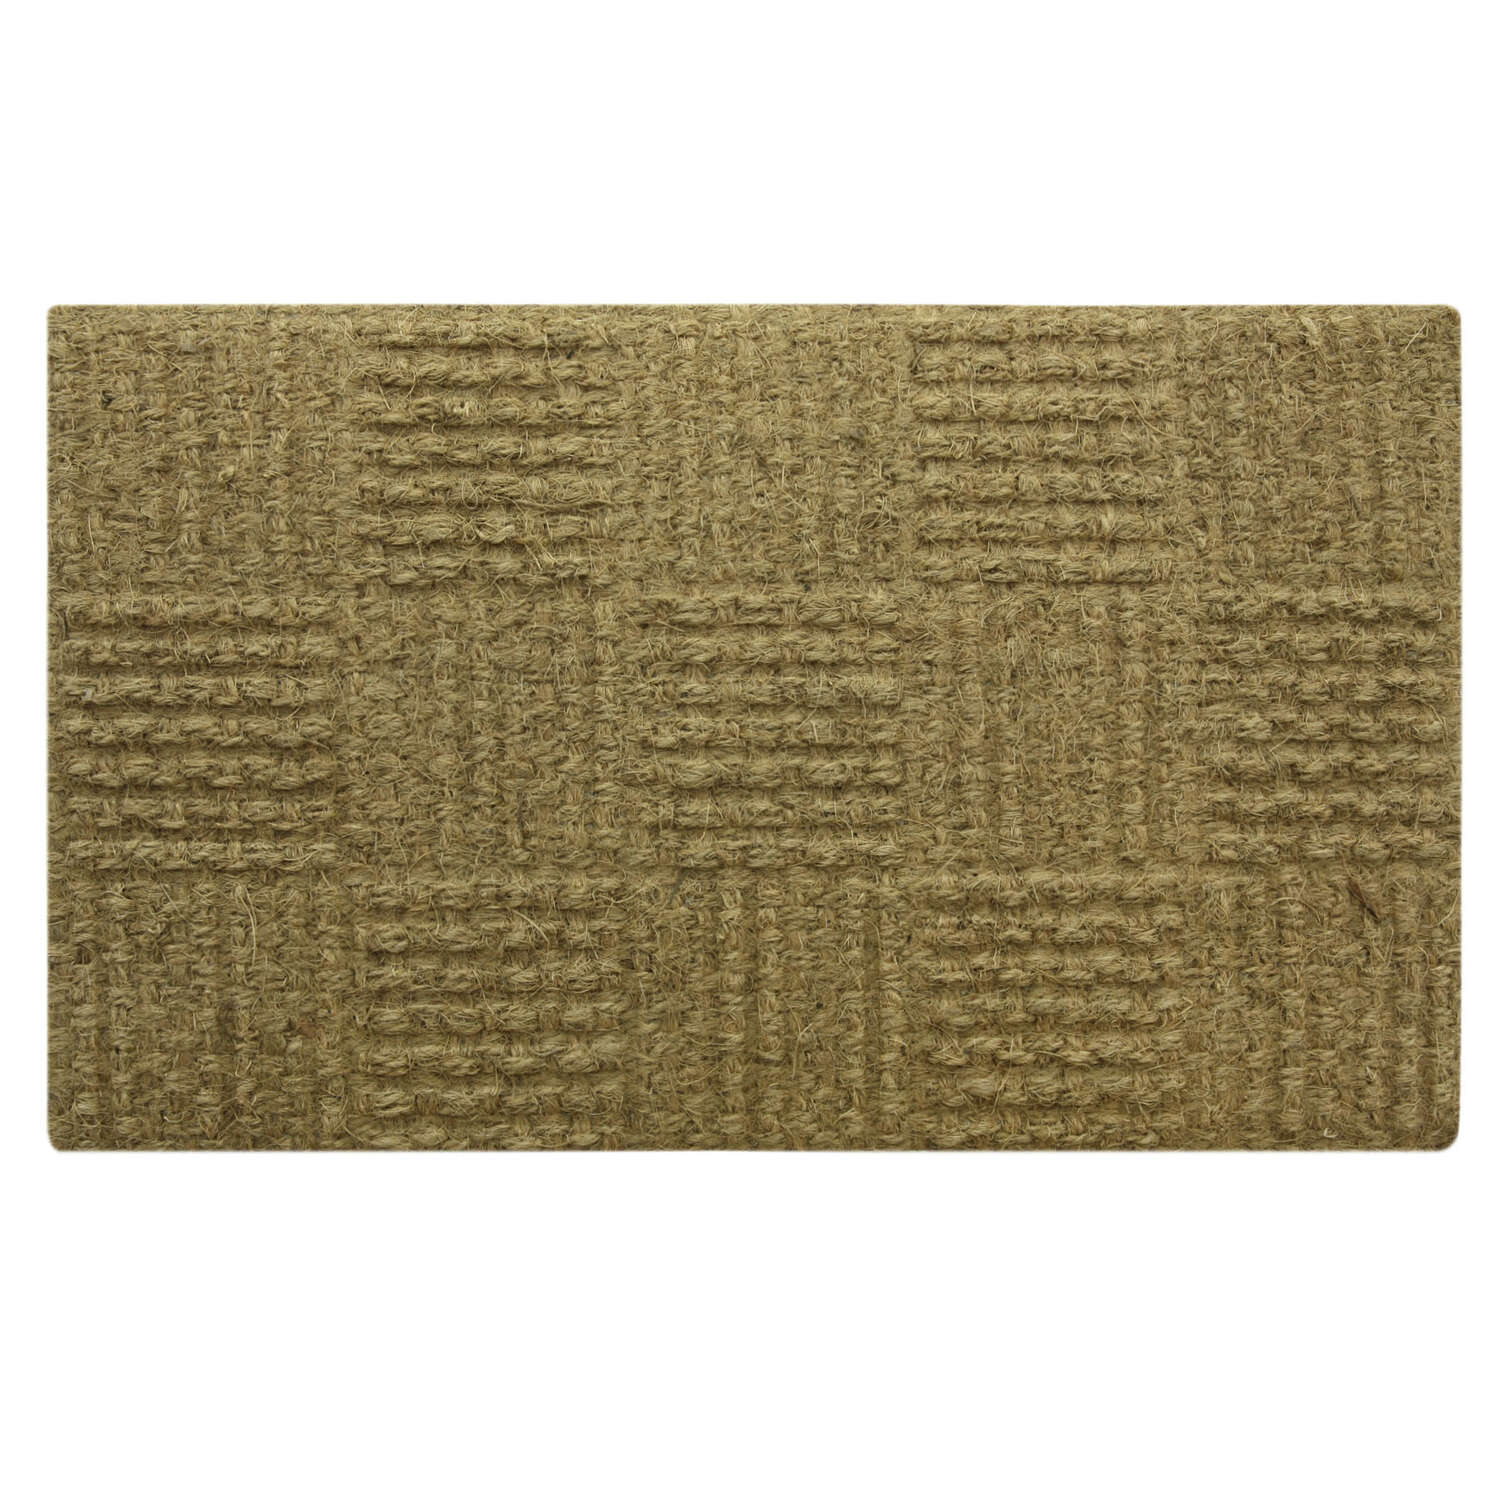 Sports Licensing Solutions  Woven  Brown  Coir  Coco Mat  30  L x 18  W